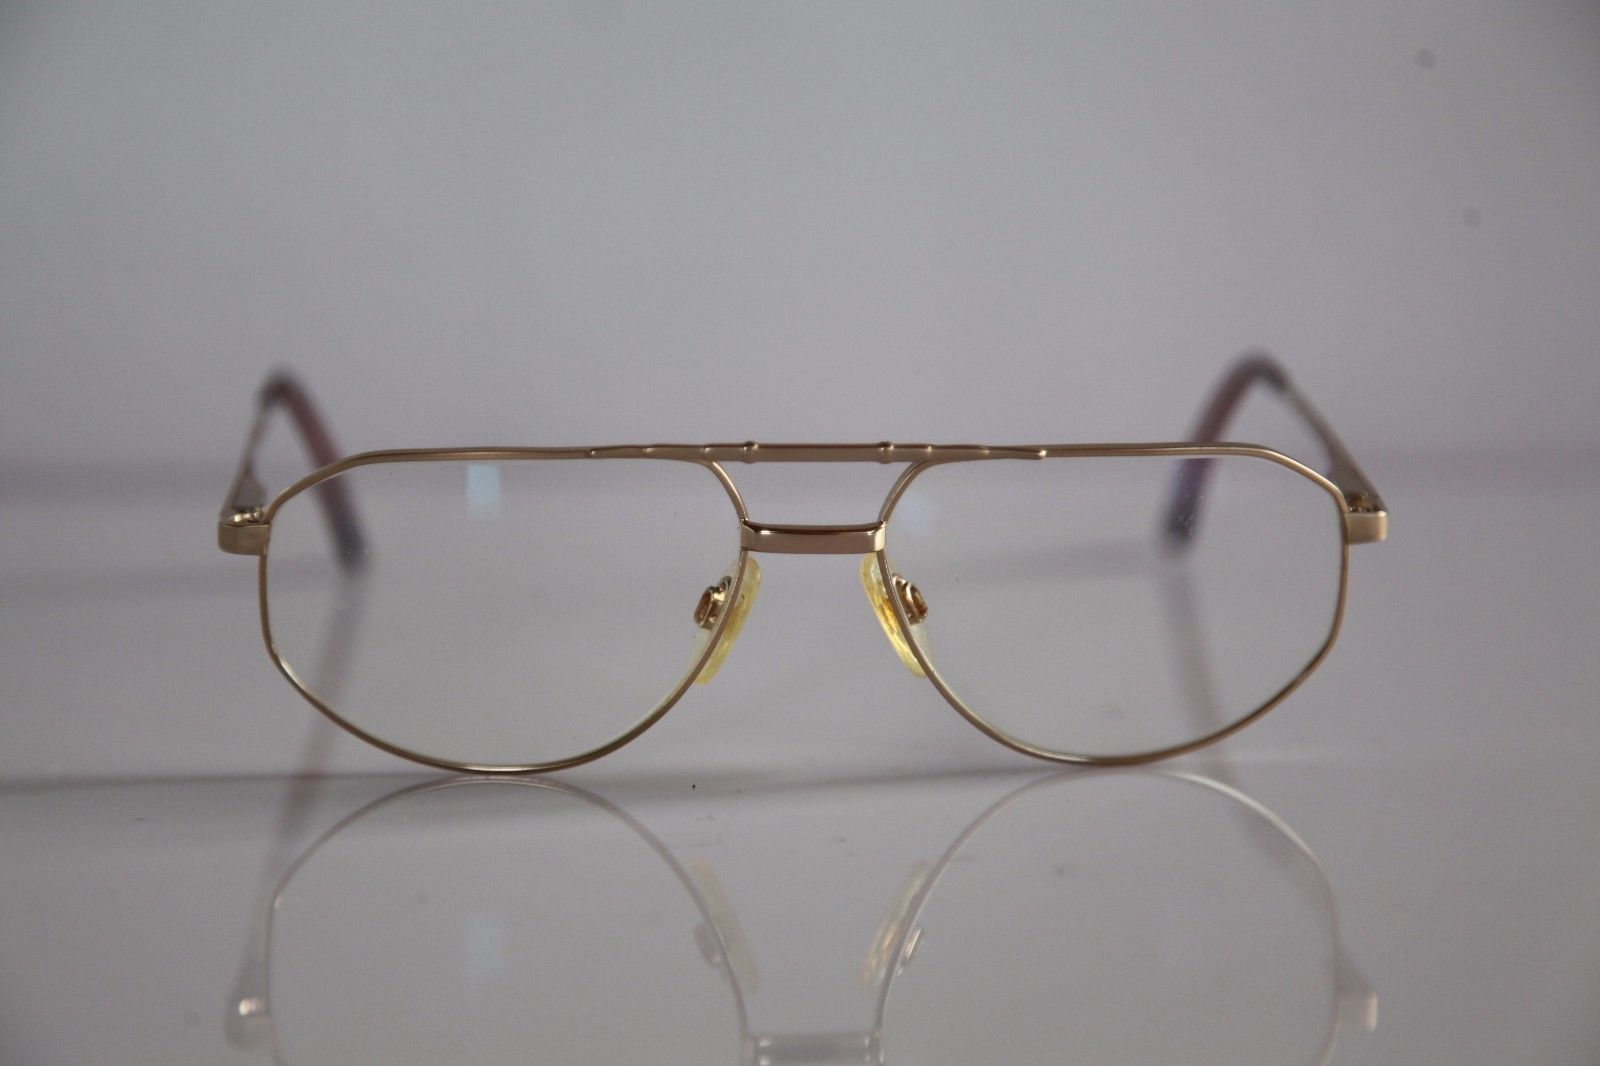 TREND COMPANY Eyewear, Gold Frame, Clear Lenses Prescription.